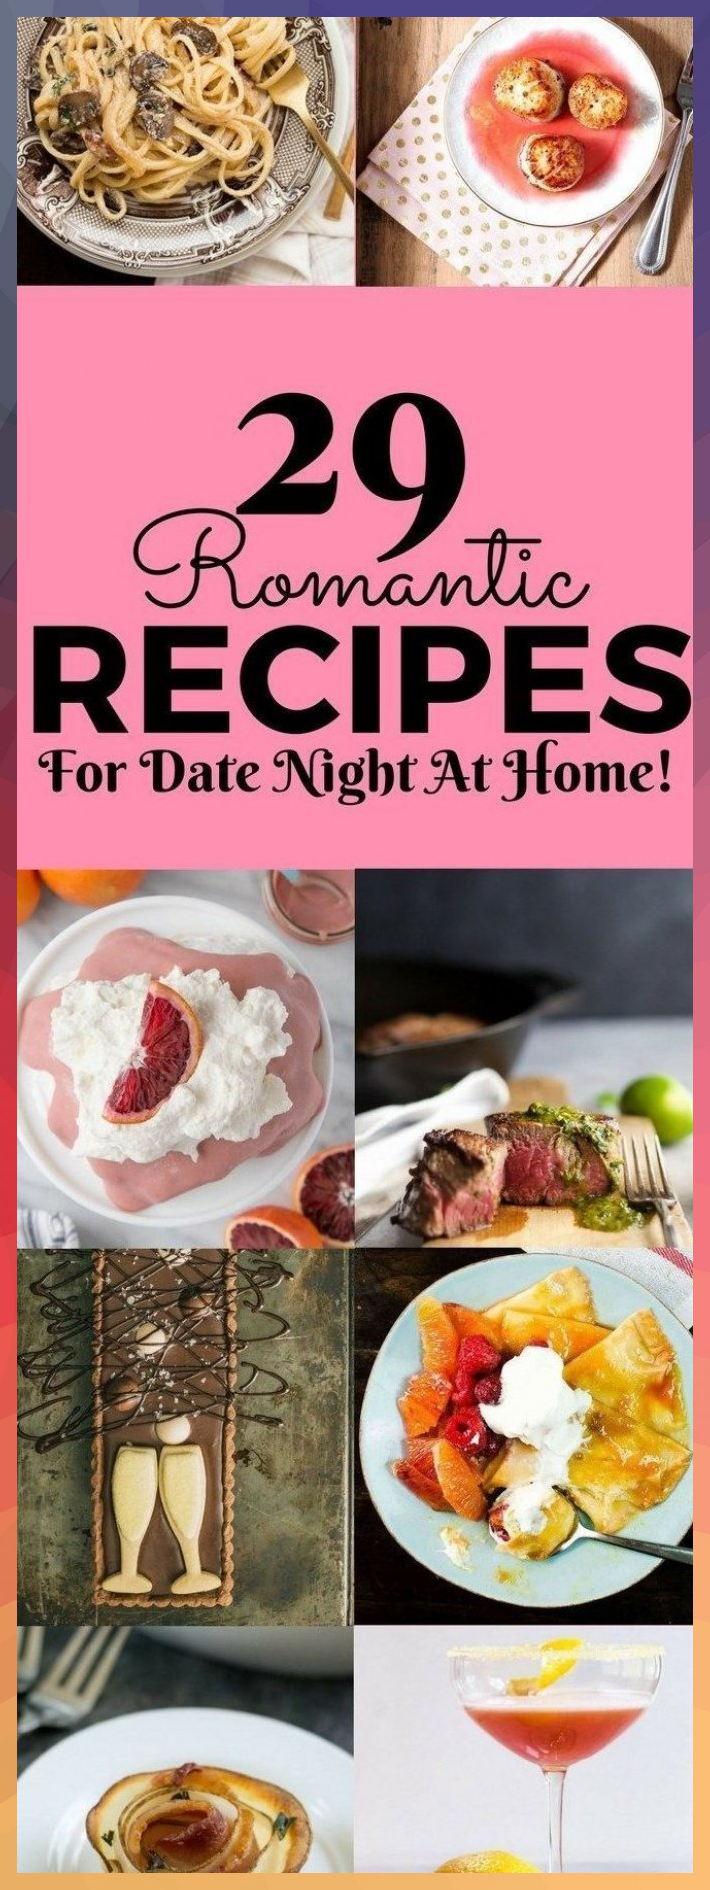 29 Romantic Date Night at Home Recipes 114138171787698953